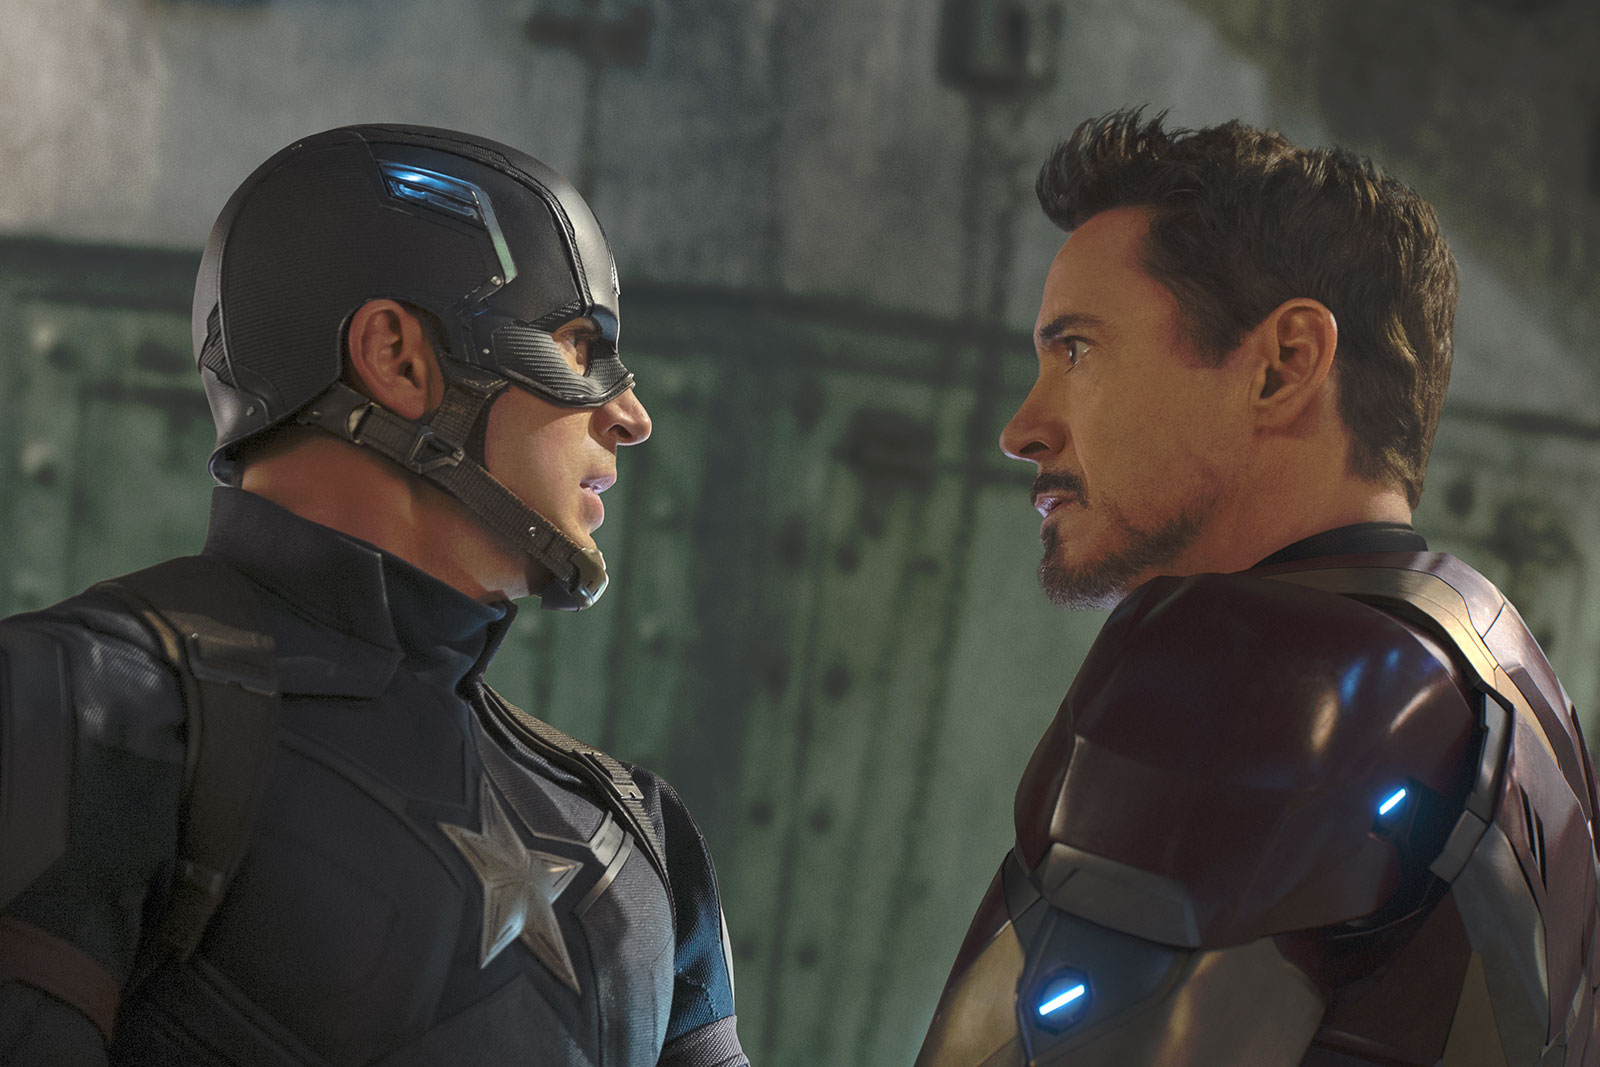 CAPTAIN AMERICA CIVIL WAR - Image 45 Marvel movie Team Captain Team Iron Man - Go with the Blog